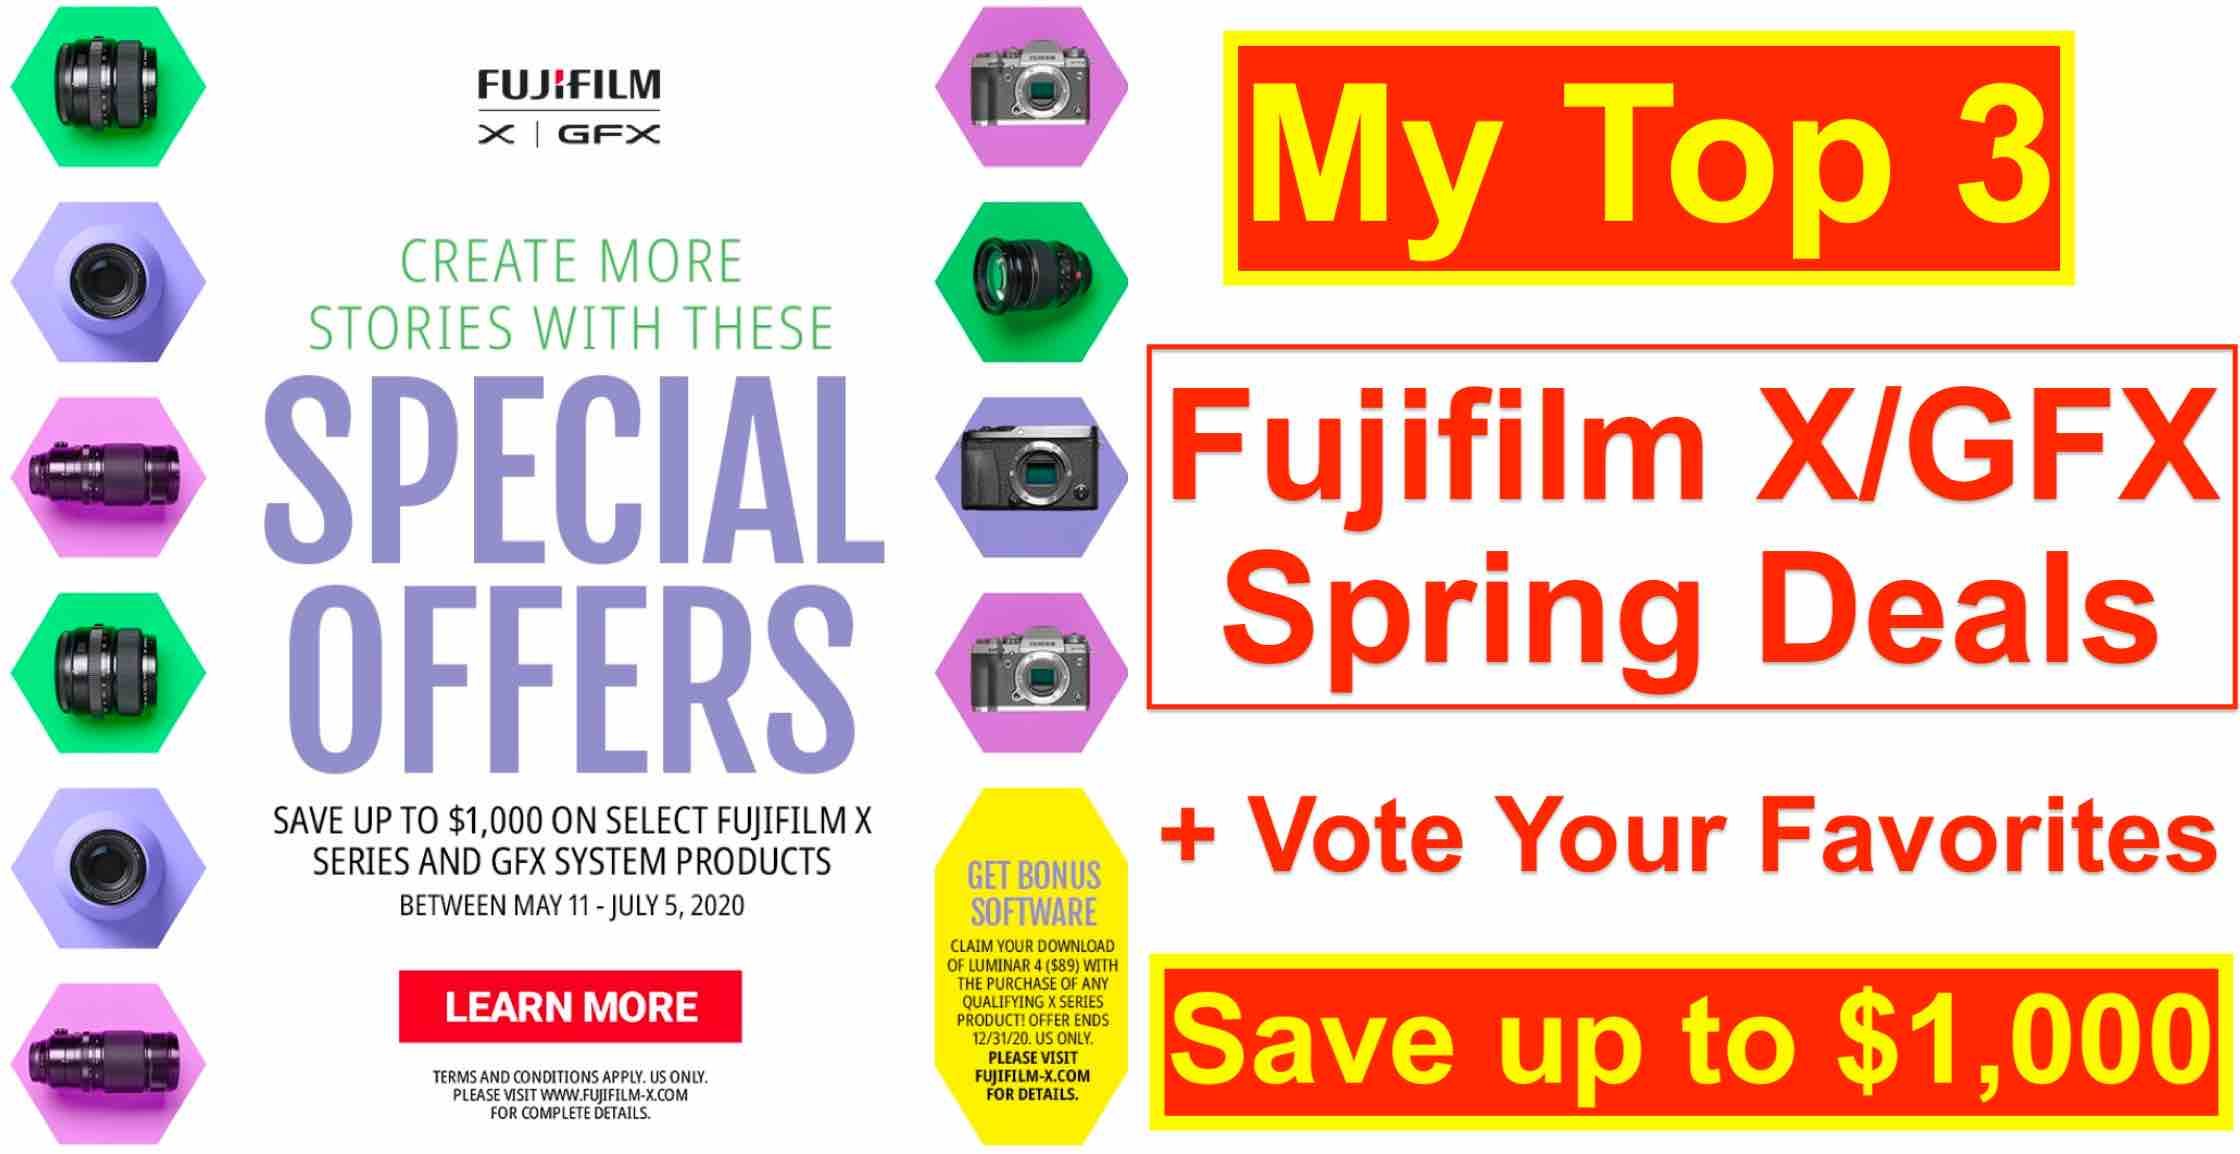 Fujifilm Usa New Big X Gfx Deals Here Are My Top 3 Deal Picks And Vote Your Favorites Fuji Rumors